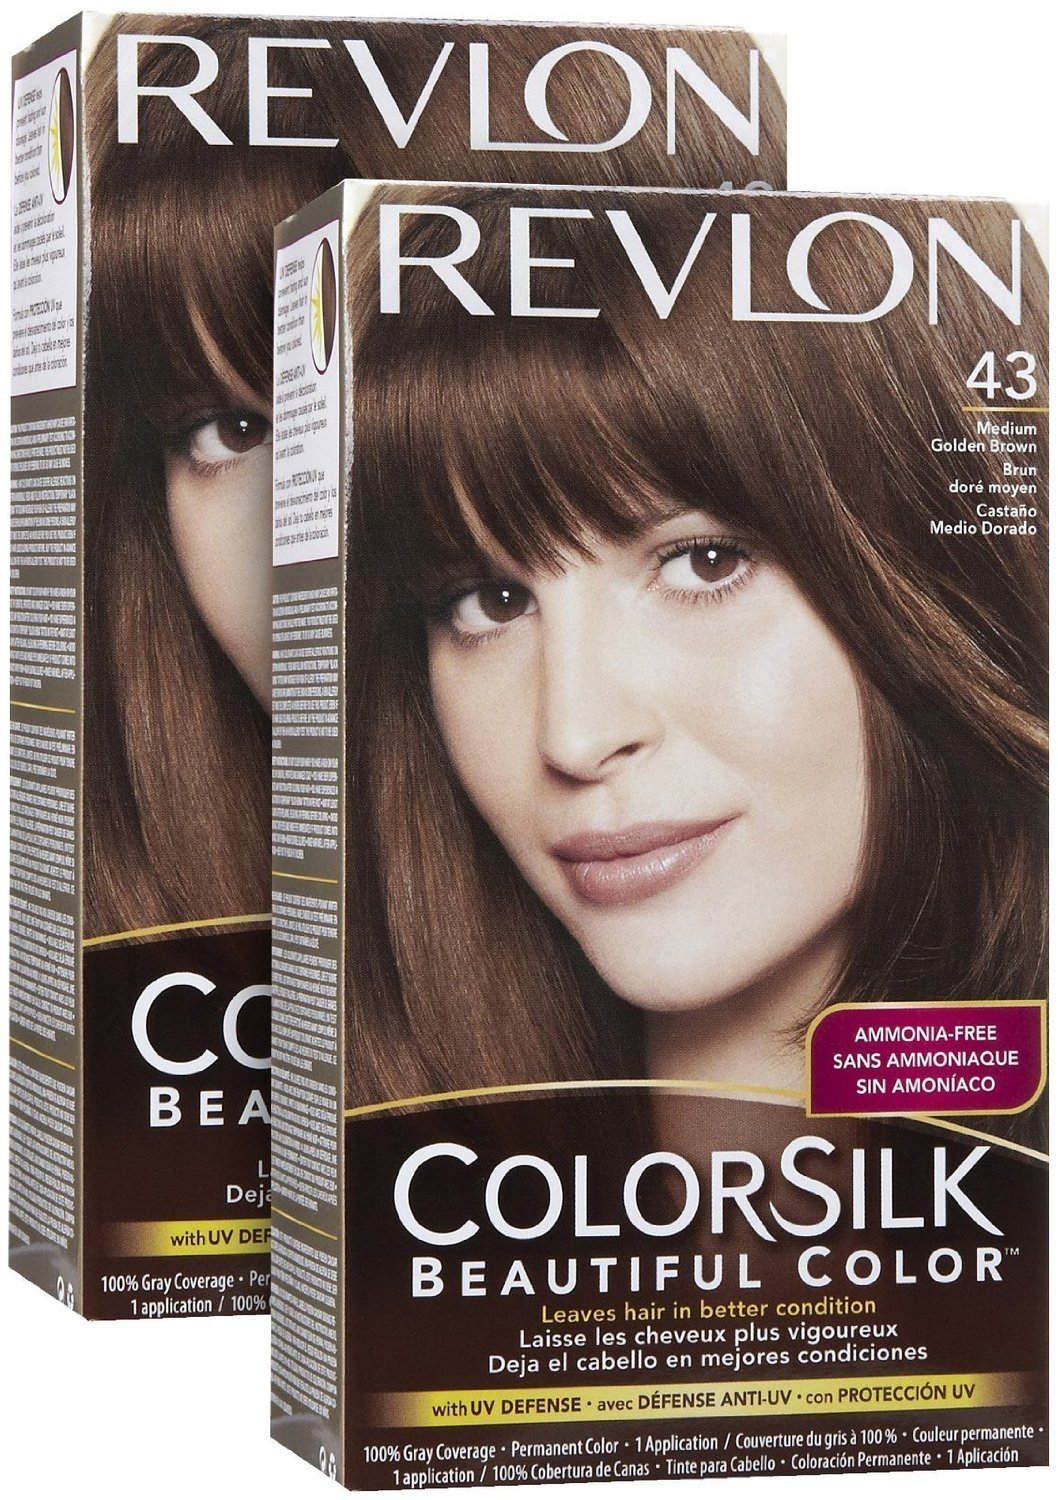 New Revlon Colorsilk With Uv Defense Hair Dye Review Ideas With Pictures